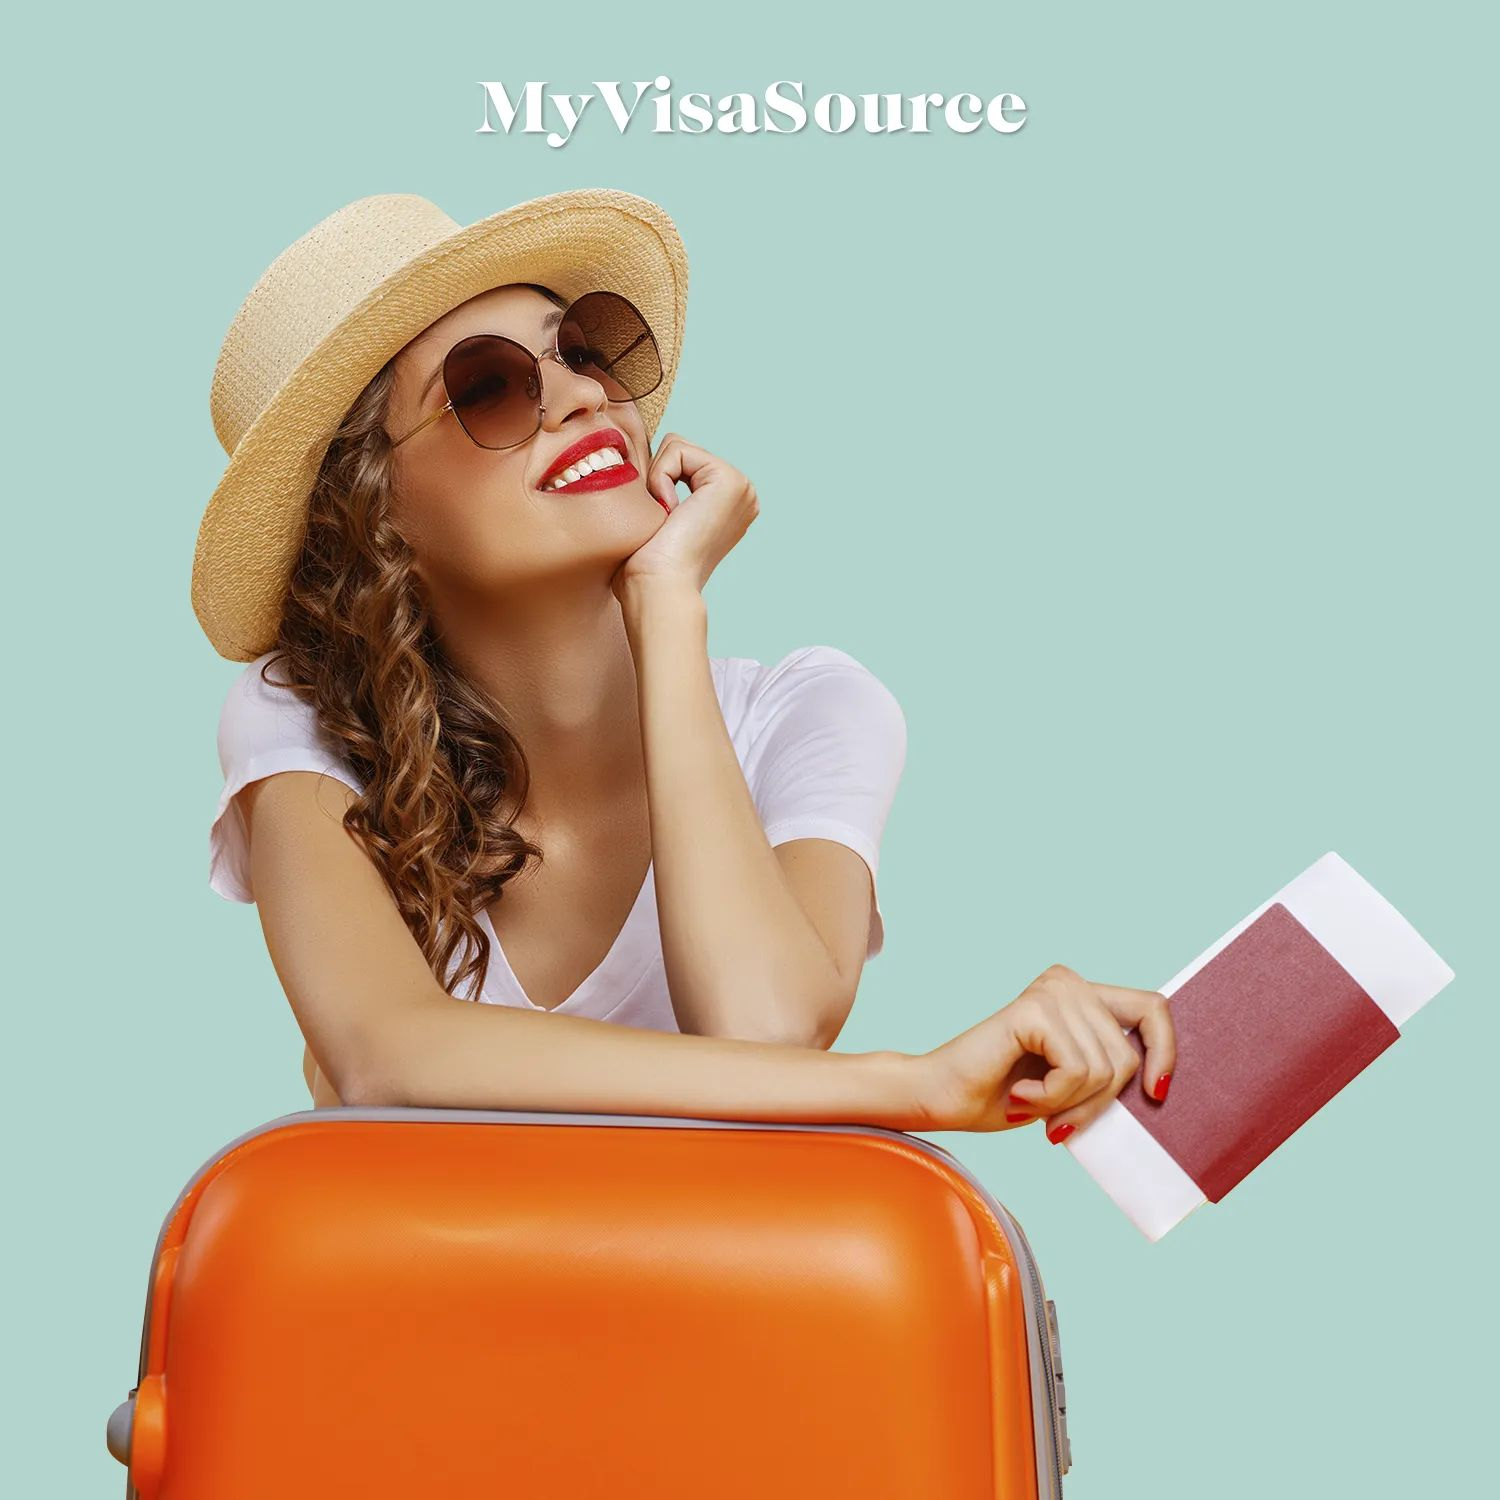 a-young-woman-ready-to-travel-with-her-passport-and-luggage-by-my-visa-source